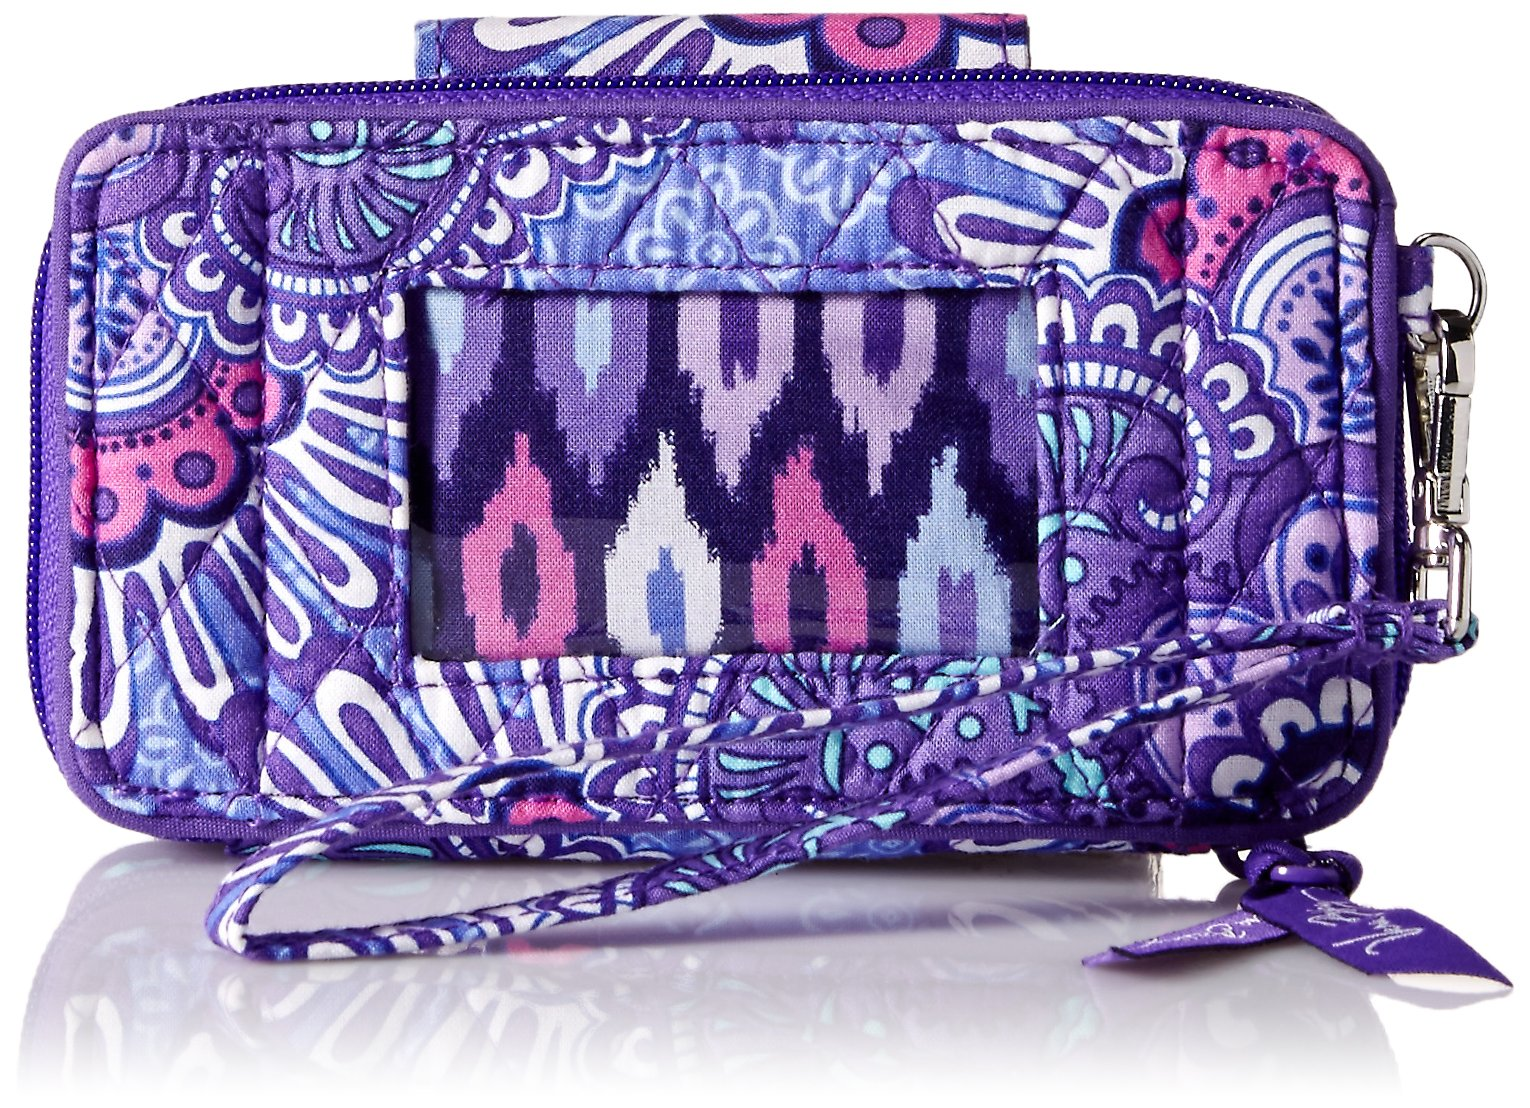 Vera Bradley Smartphone Wristlet for Iphone 6, Lilac Tapestry